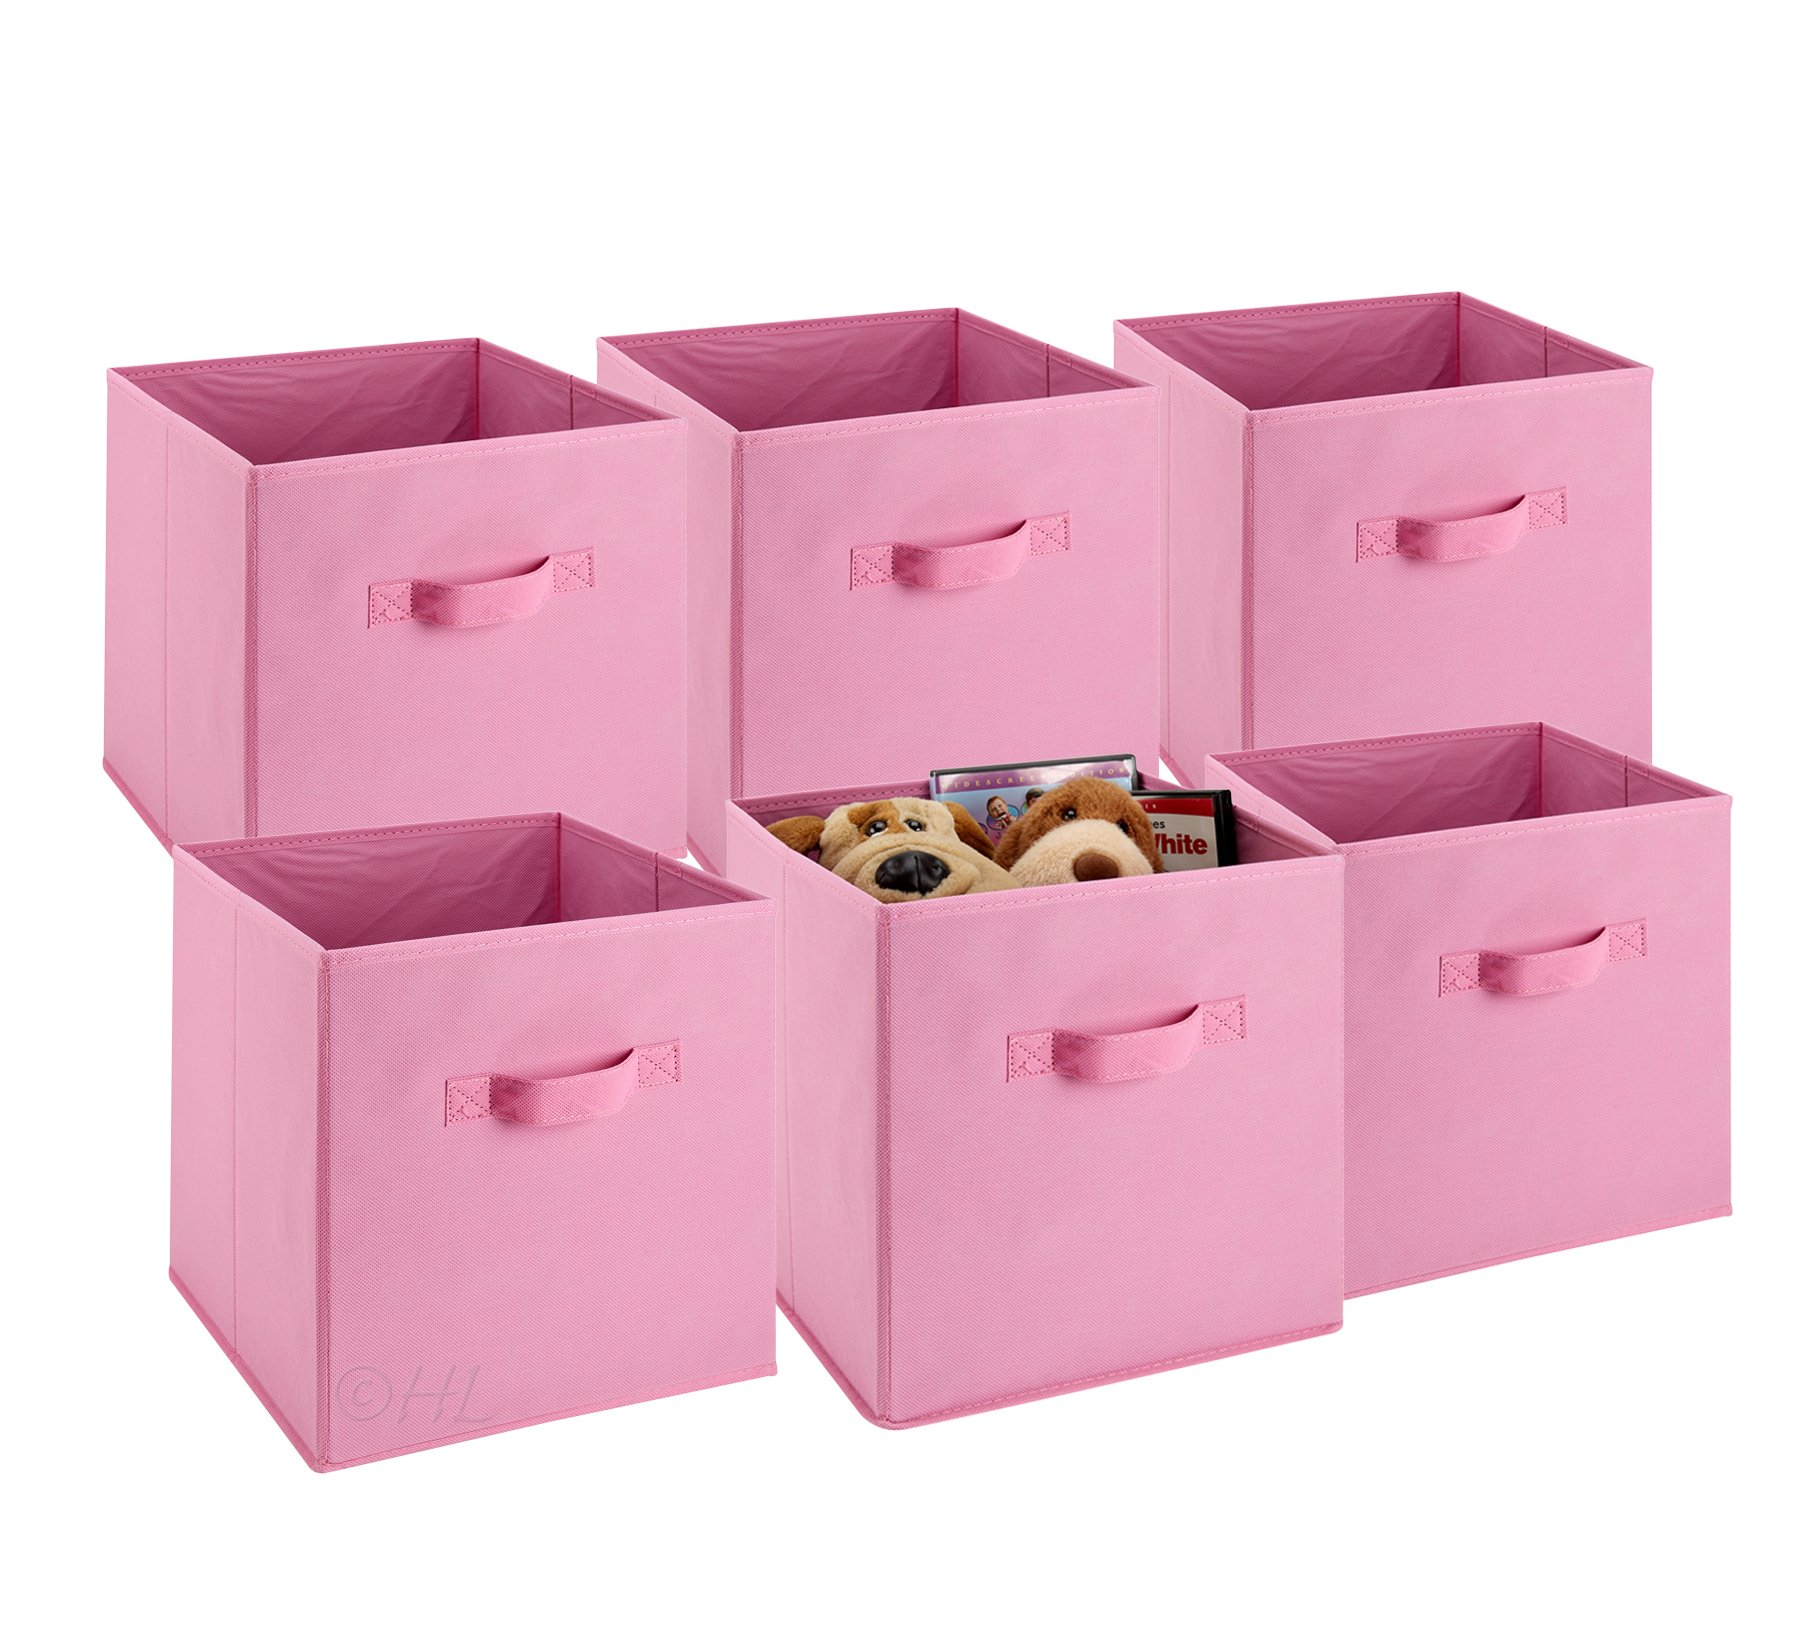 Foldable Cube Storage Bins - 6 Pack - These Decorative Fabric Storage Cubes are Collapsible and Great Organizer for Shelf, Closet or Underbed. Convenient for Clothes or Kids Toy Storage (Pink) by Handy Laundry